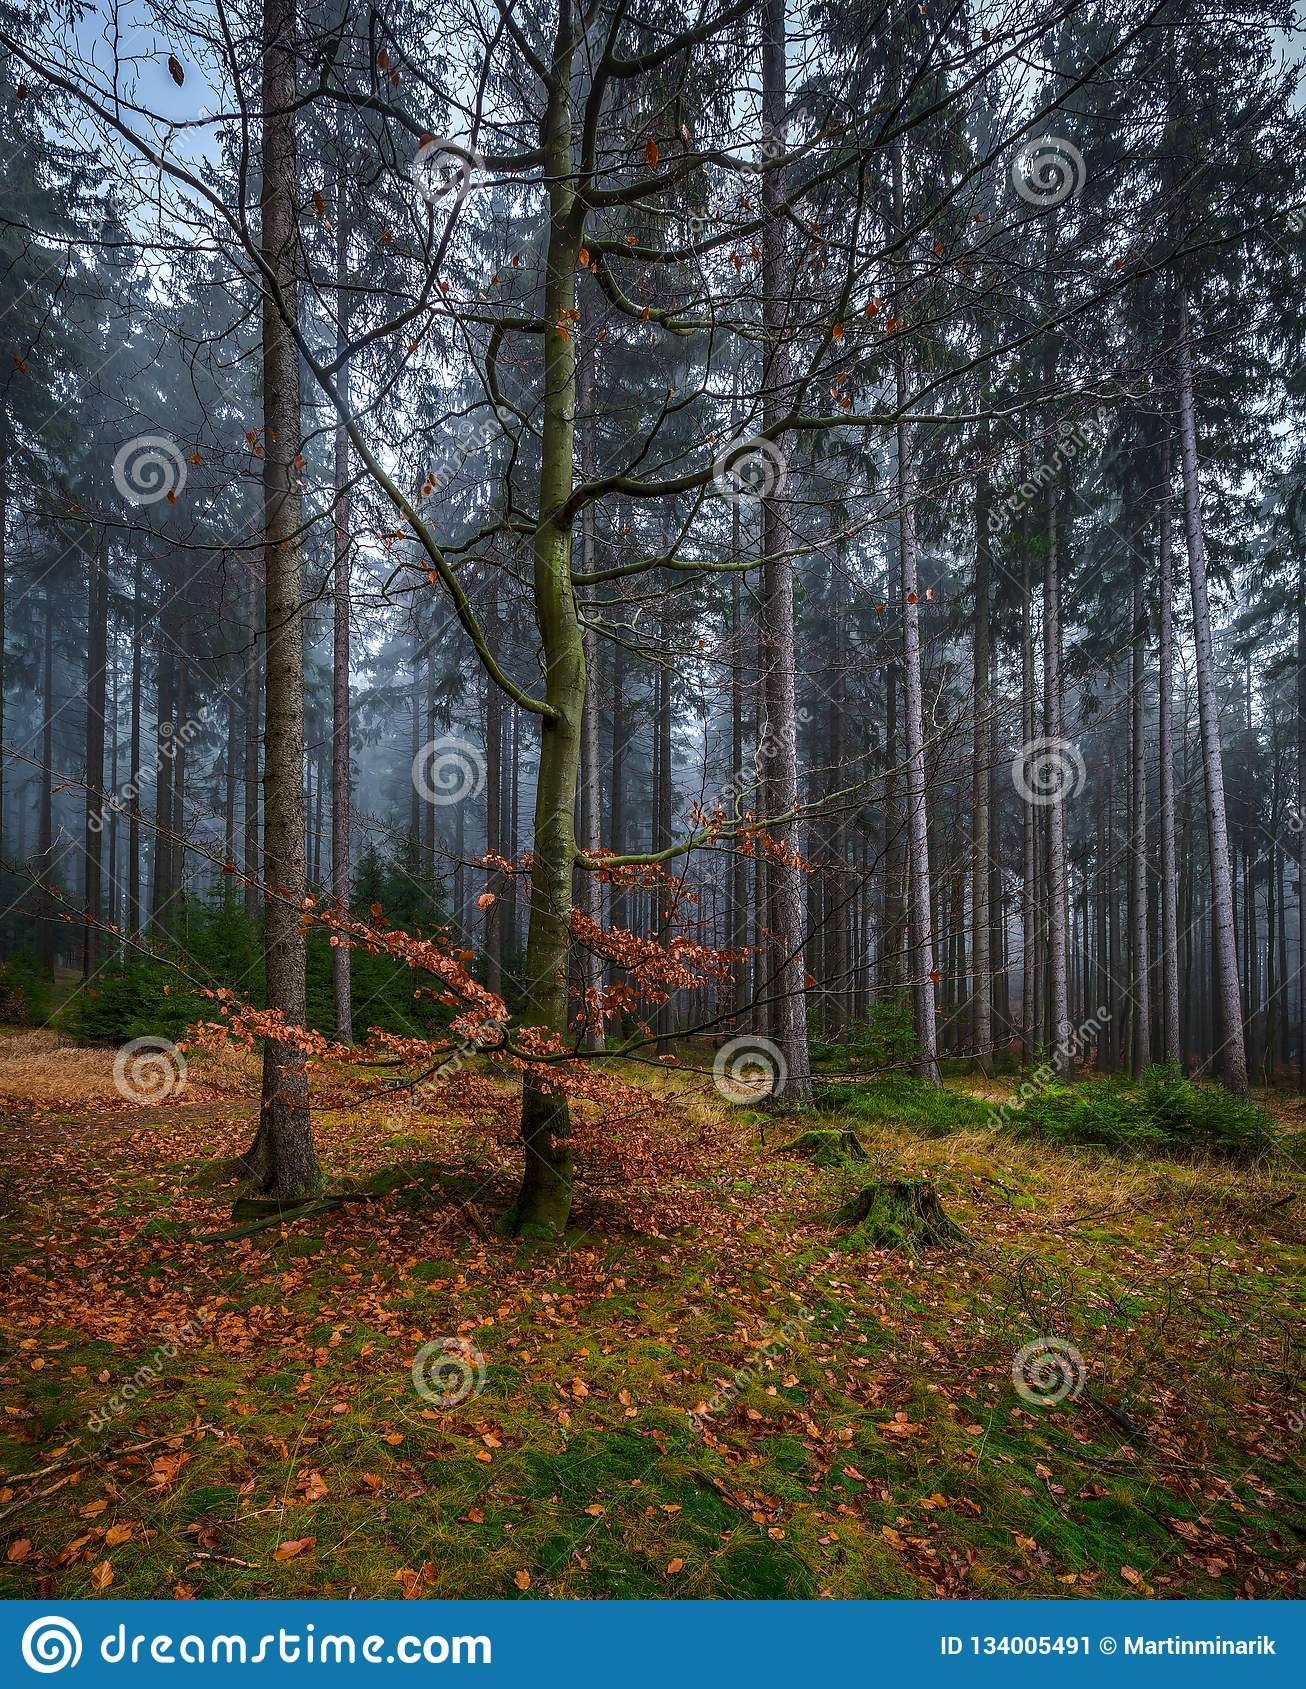 Creepy mystic forest with green grass and colorful fallen trees